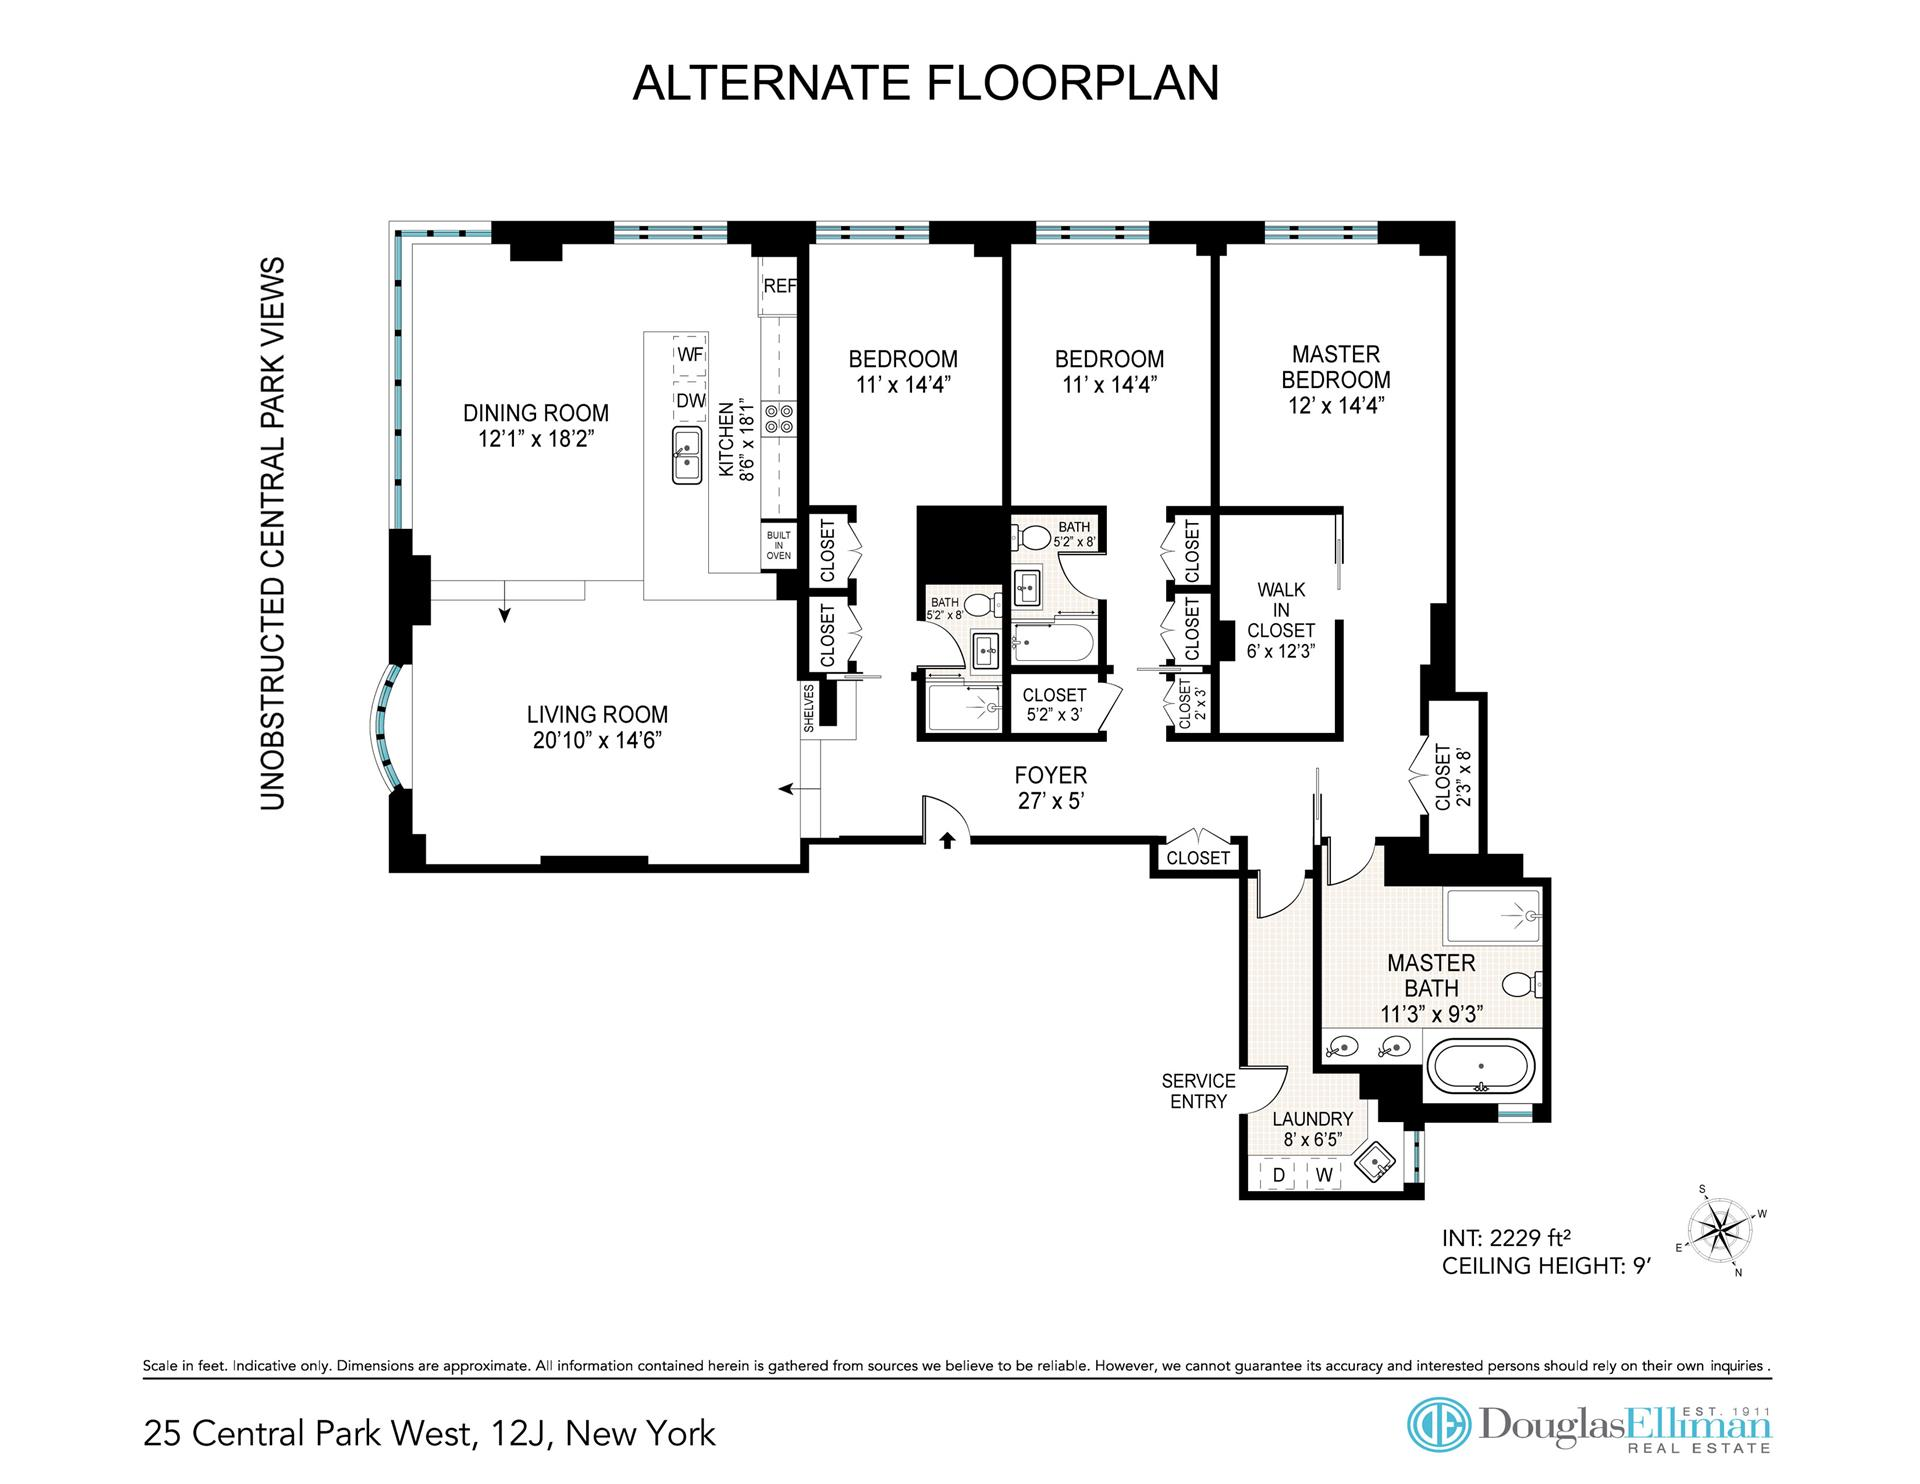 Floor plan of CENTURY, 25 Central Park West, 12J - Lincoln Square, New York